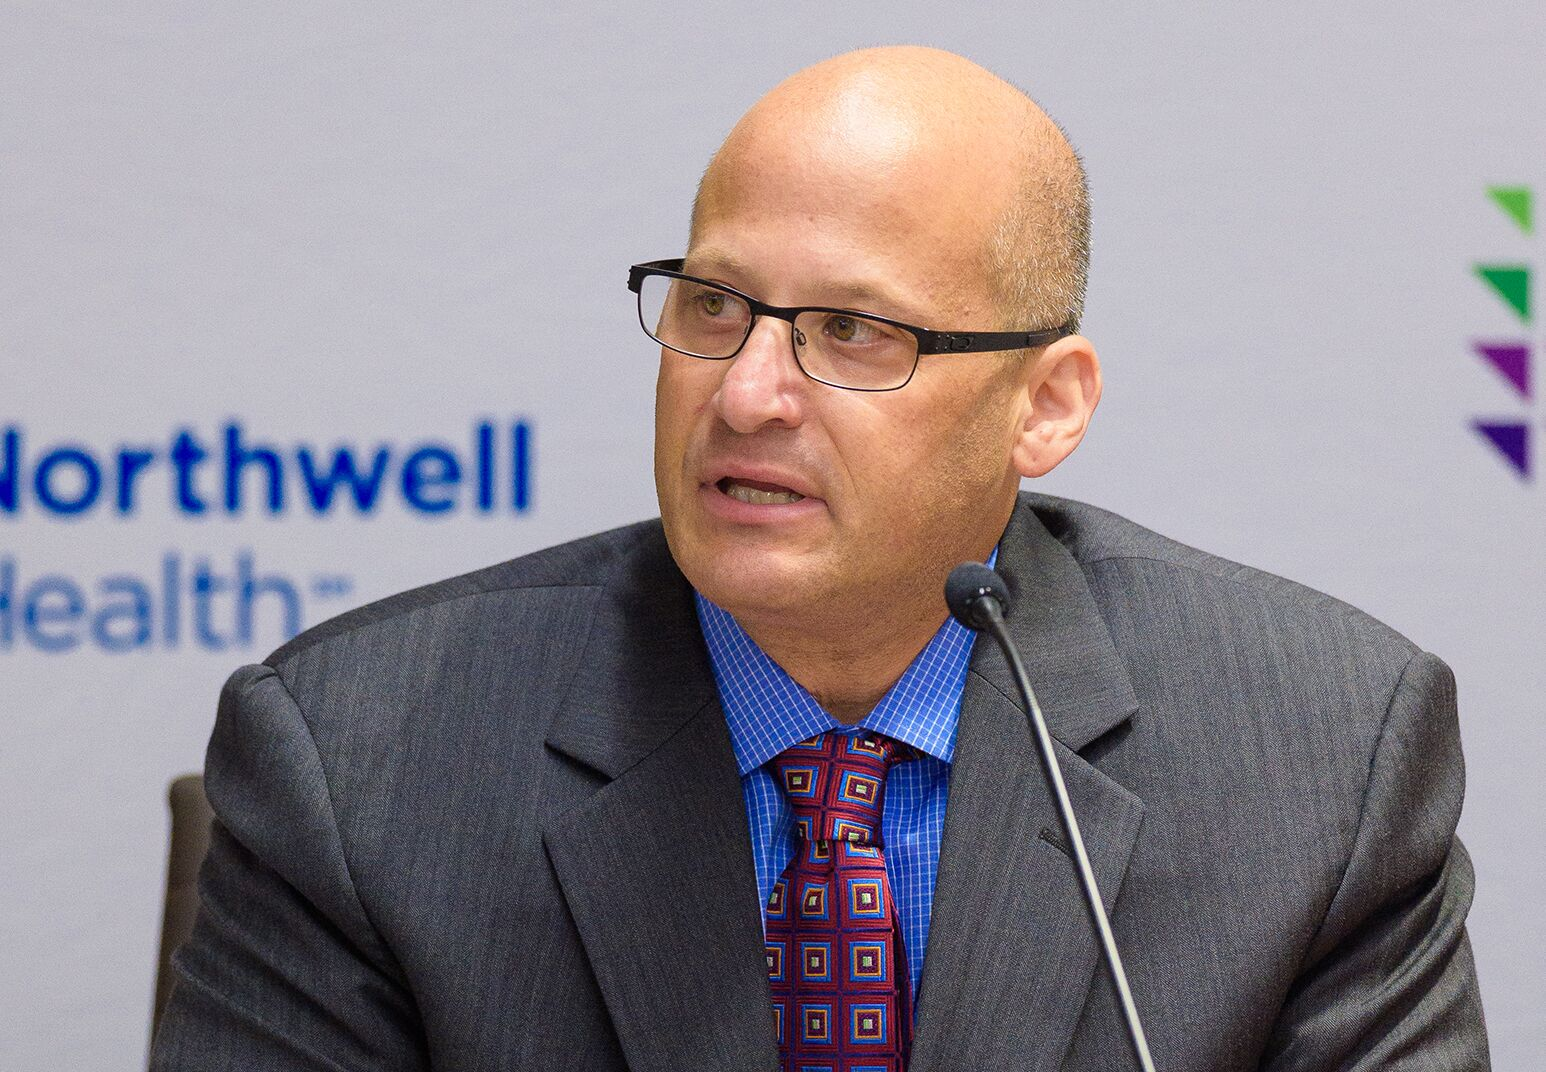 Michael G. Guttenberg, MD, an emergency services leader at Northwell Health.